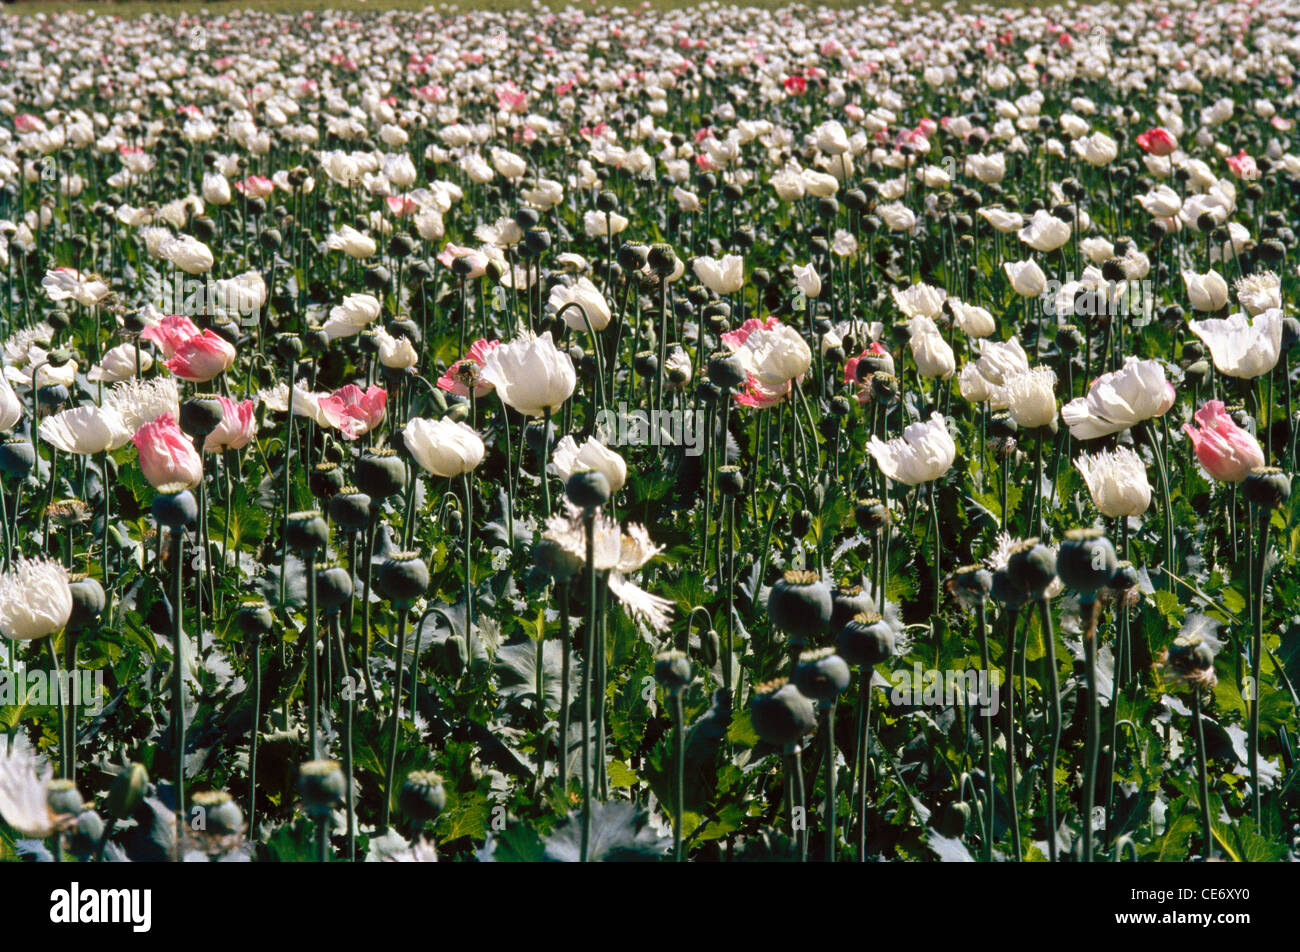 Sns 86258 Indian Opium Poppy Plant Flower Rajasthan India